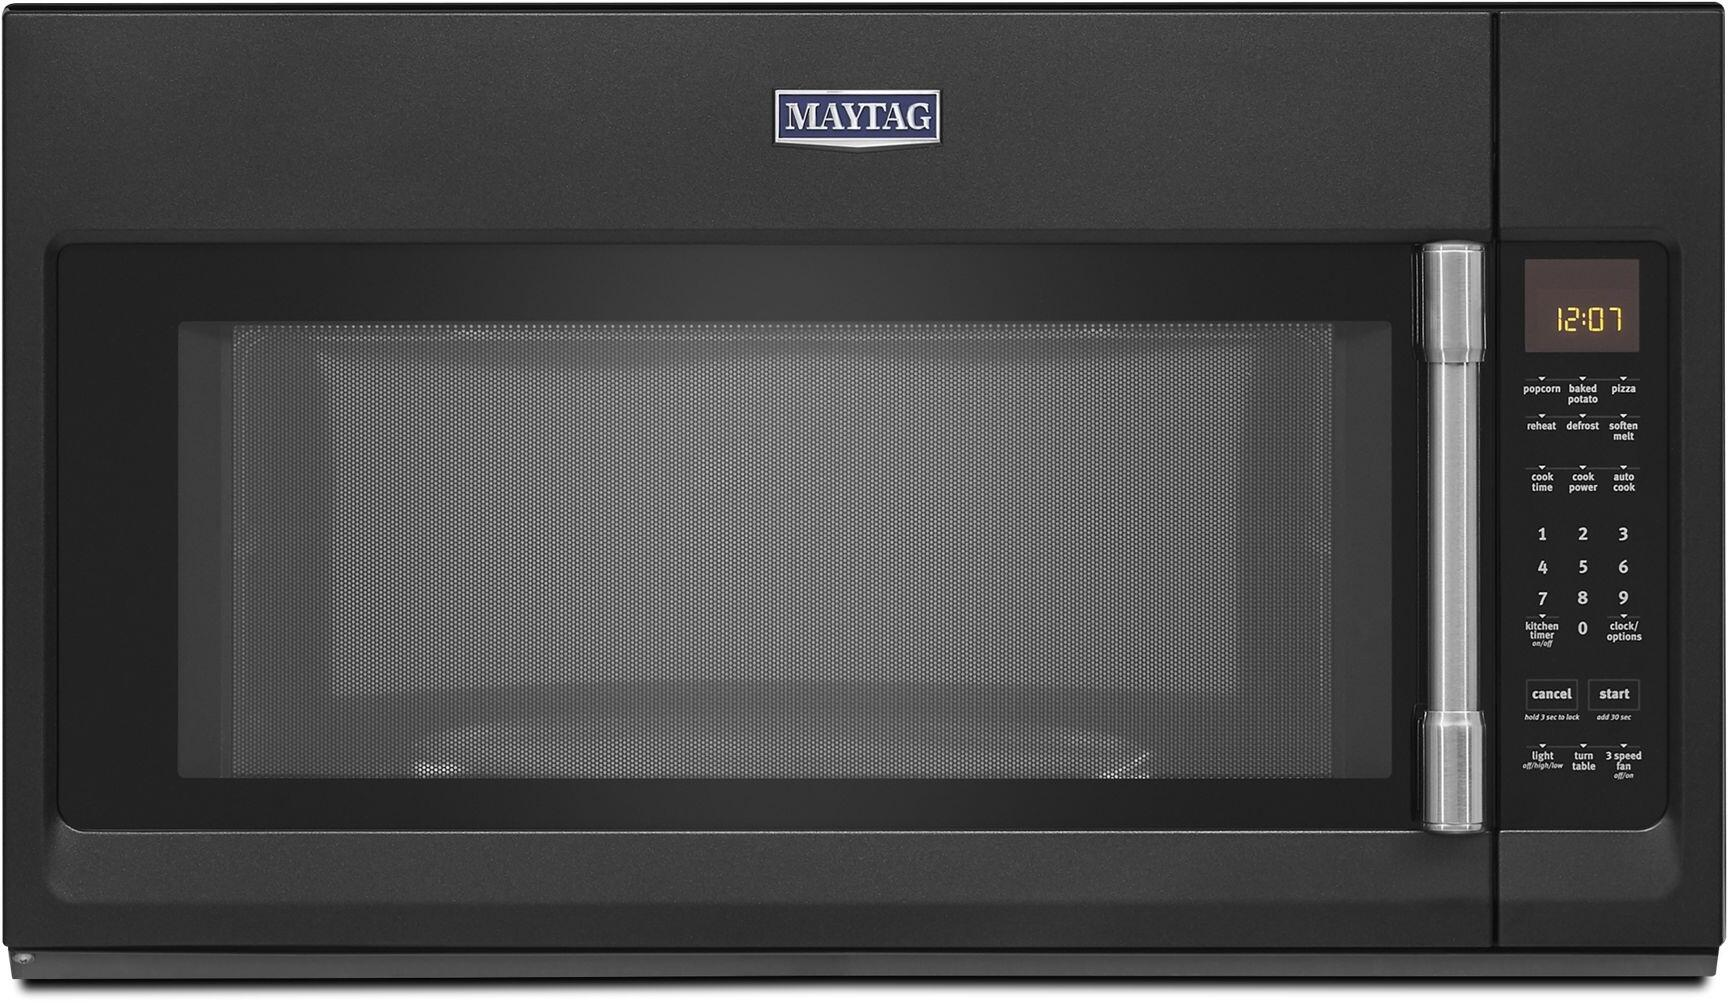 Mmv4206hk Over The Range Microwave